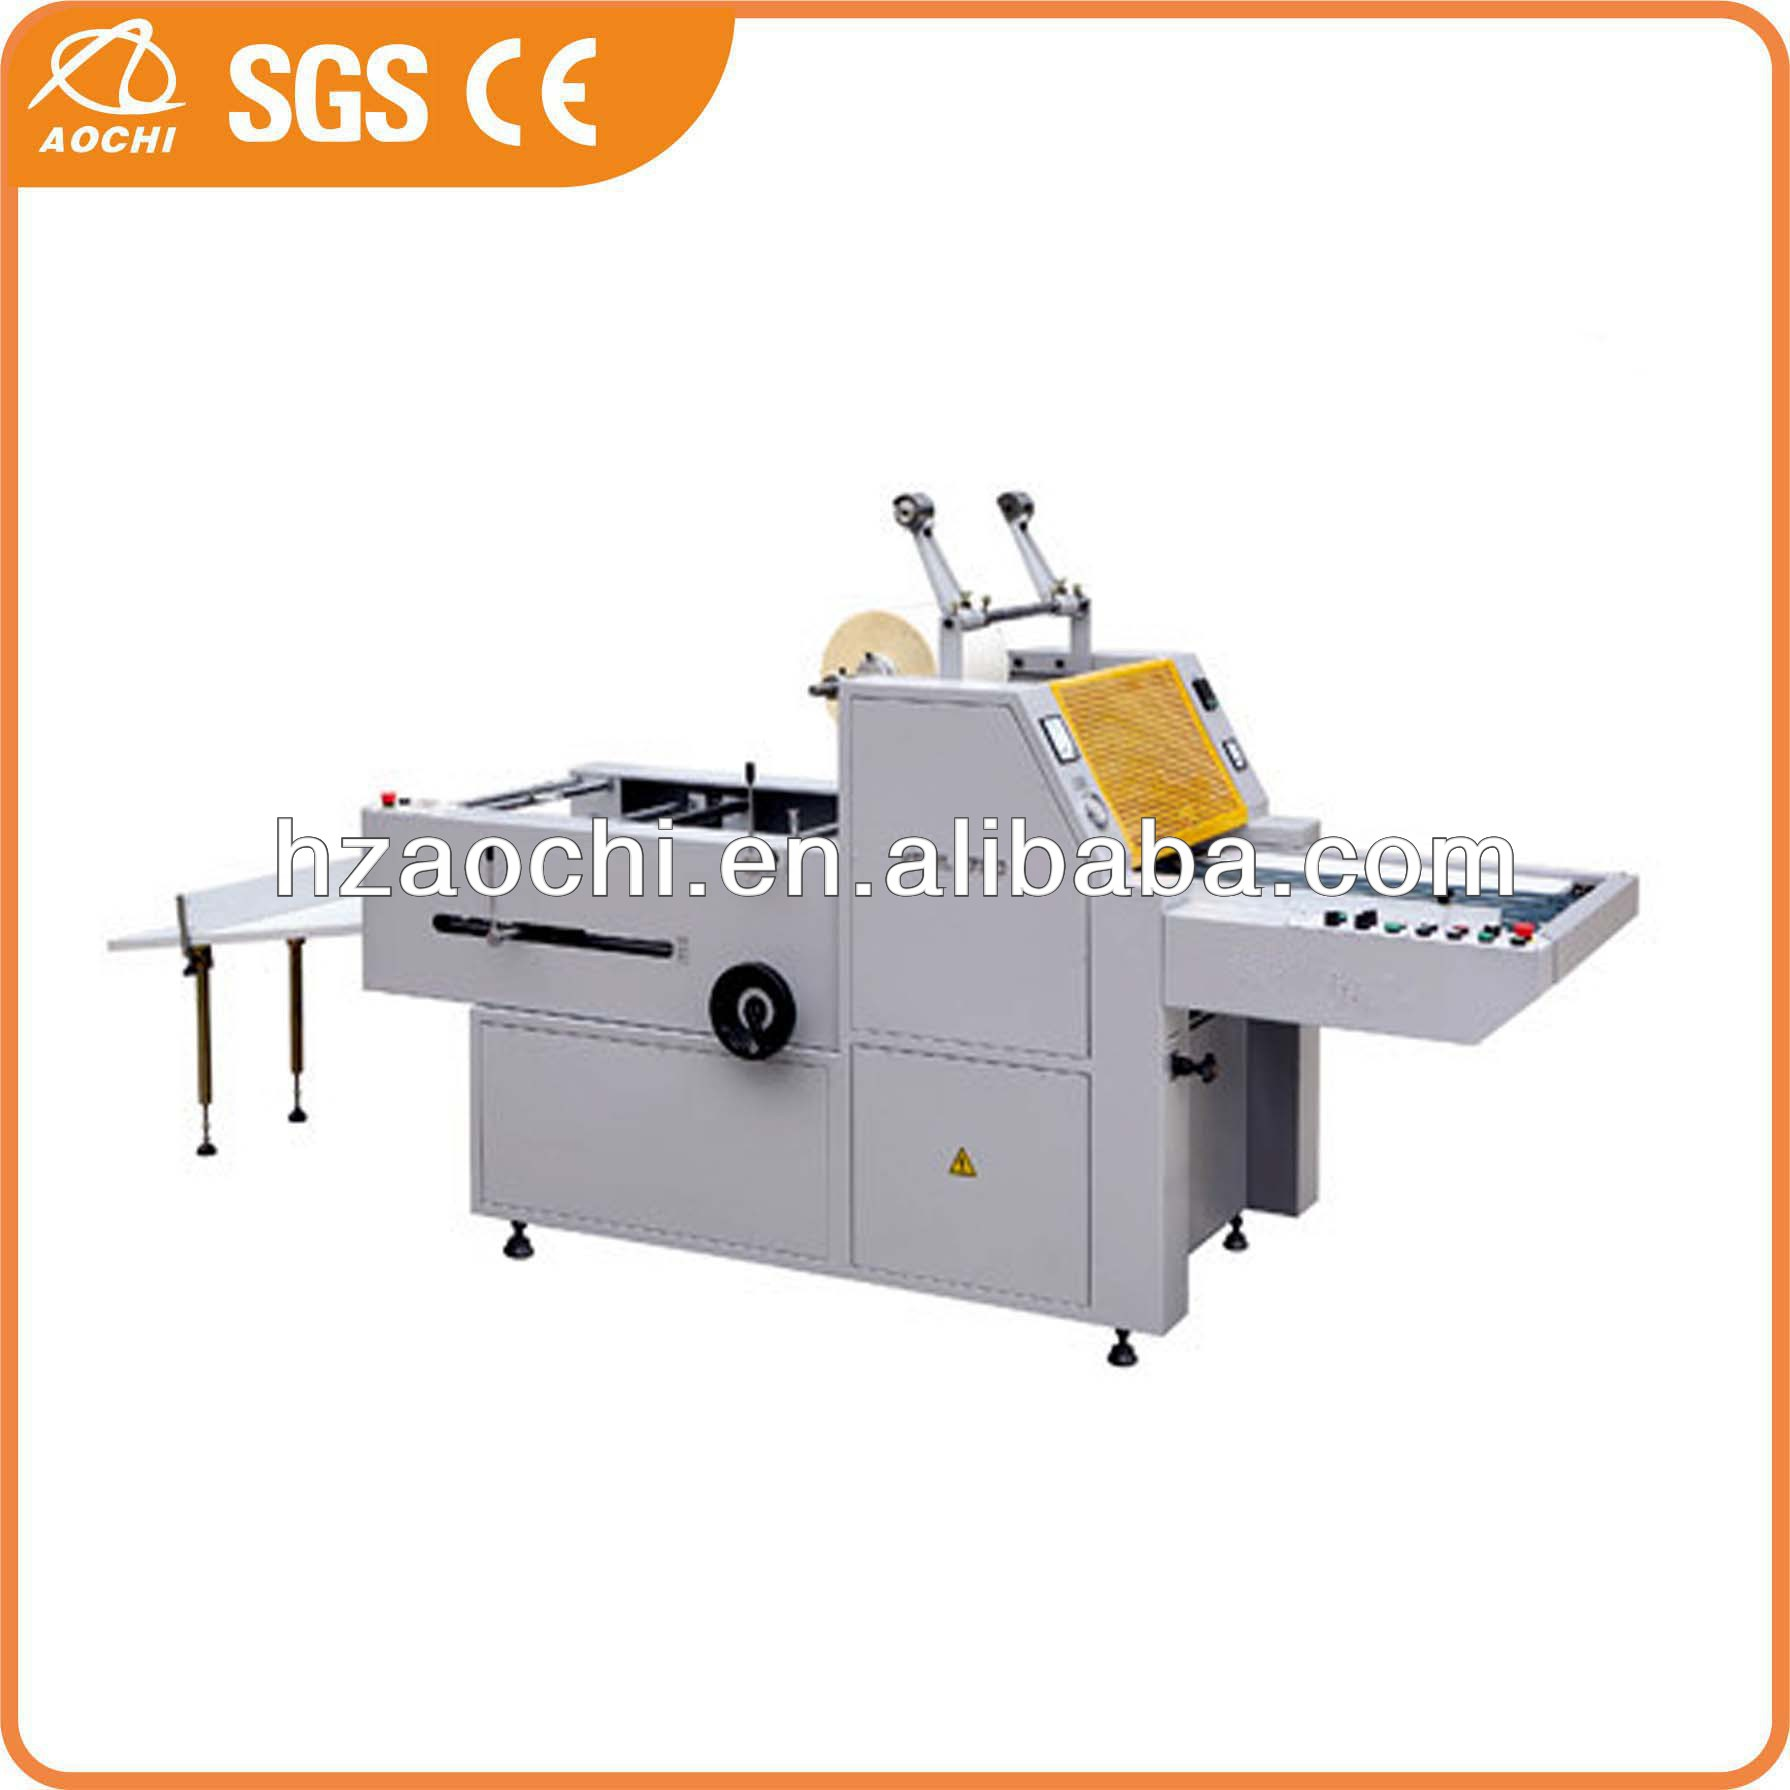 YFML-720/920/1200 semi-automatic gluing laminated machine with electric heating